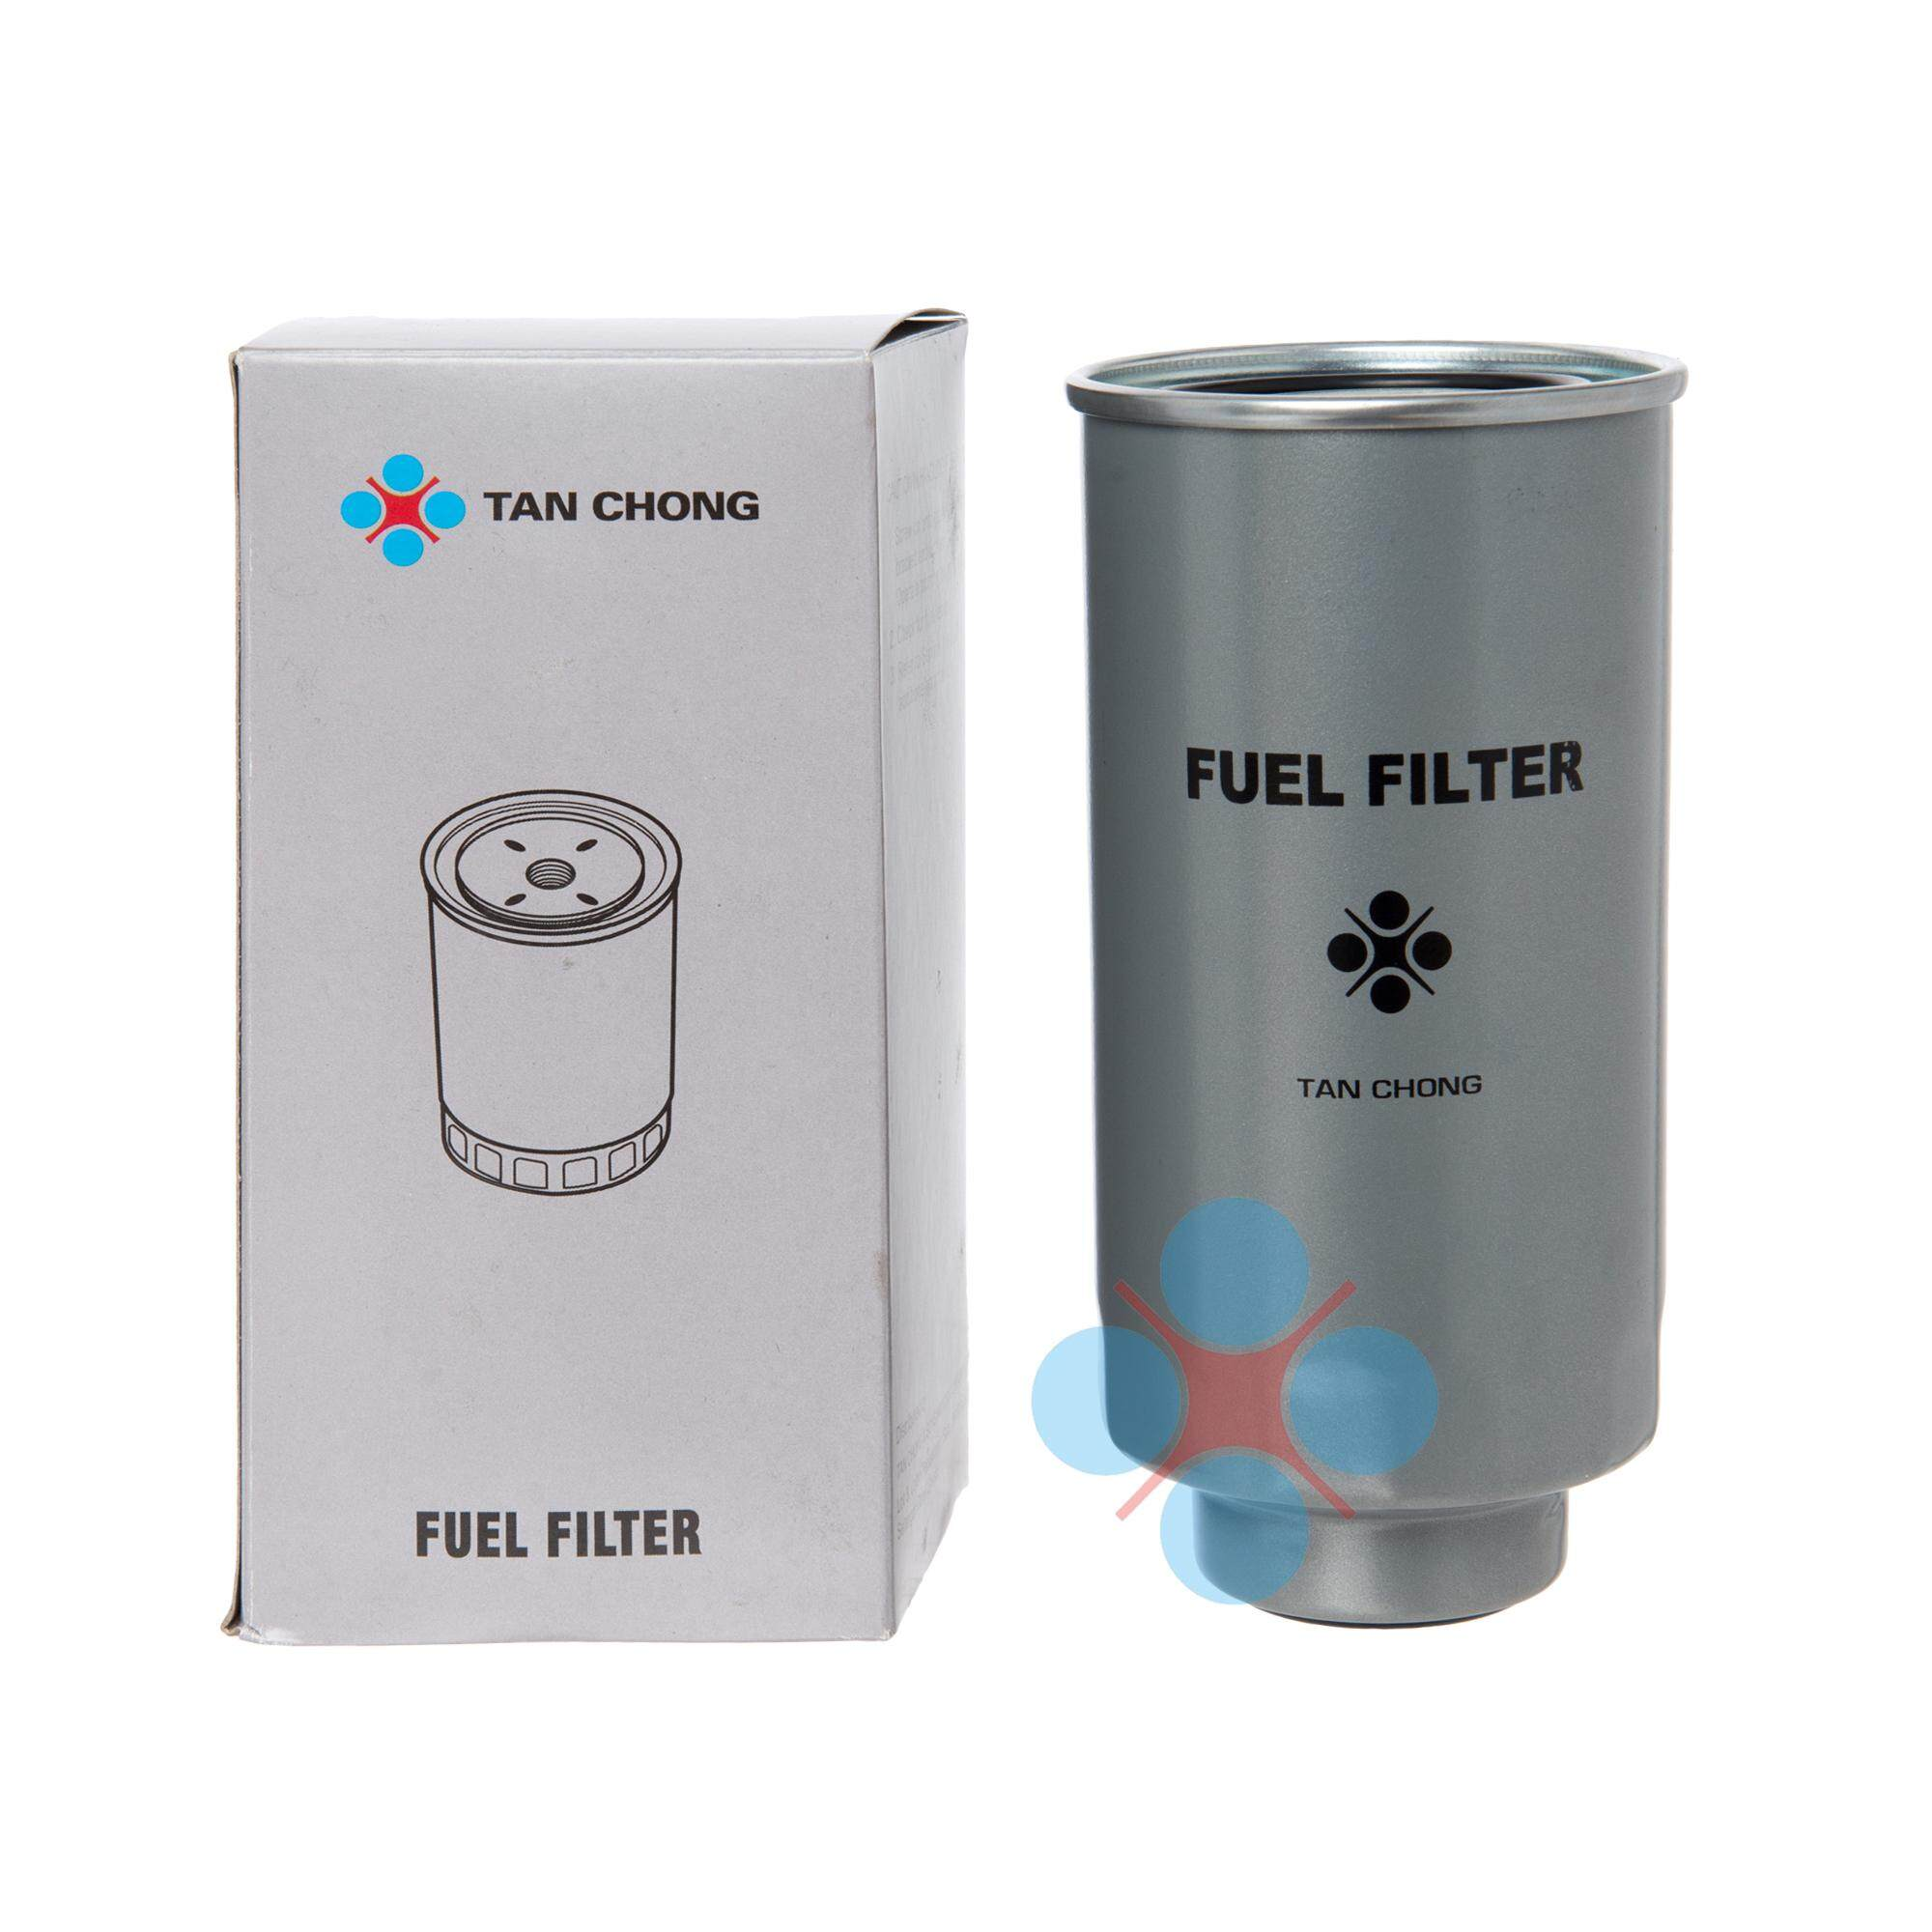 Sell Fuel Filter Cheapest Best Quality My Store Prelude Myr 45